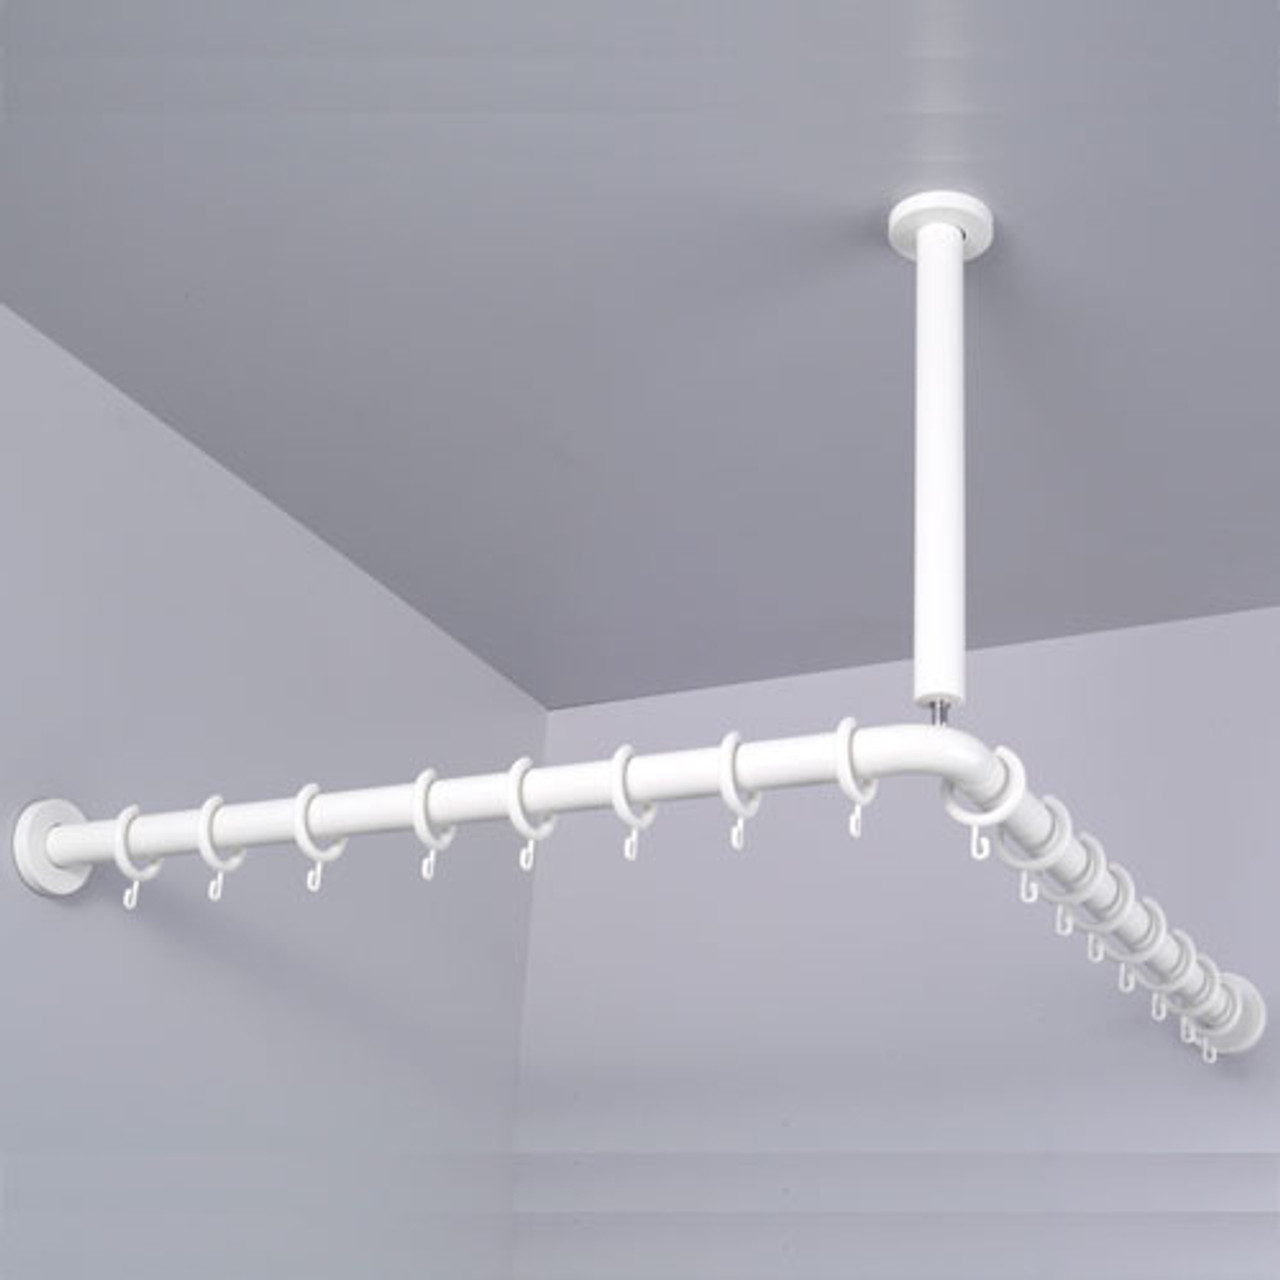 Pba Nylon Corner Shower Curtain Rod With Ceiling Support